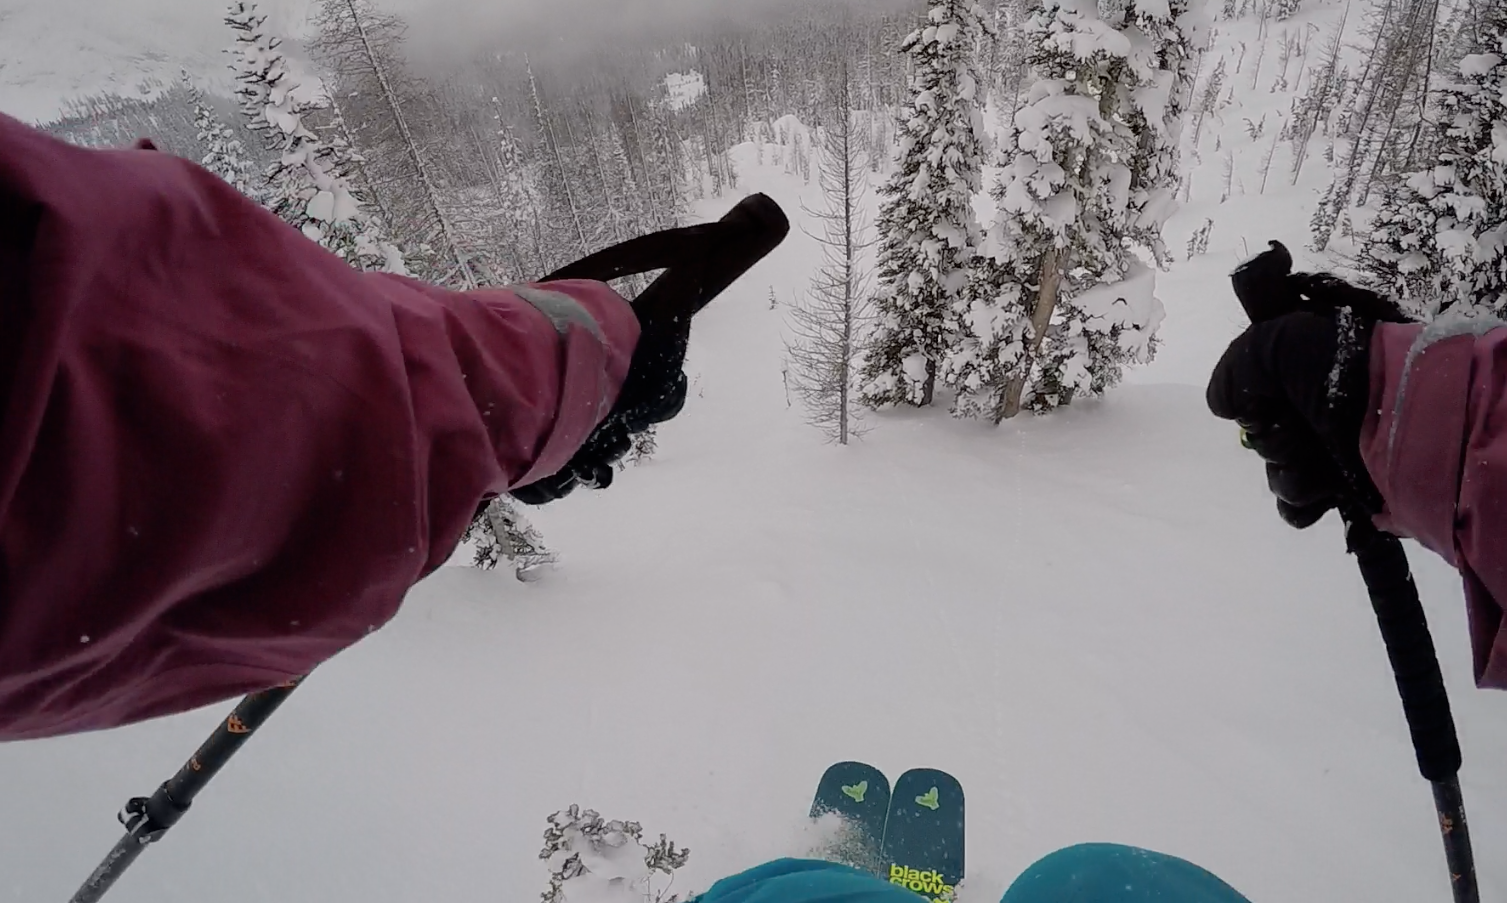 pow turns help makeeverything right in the world. especially when you can jump off stuff.